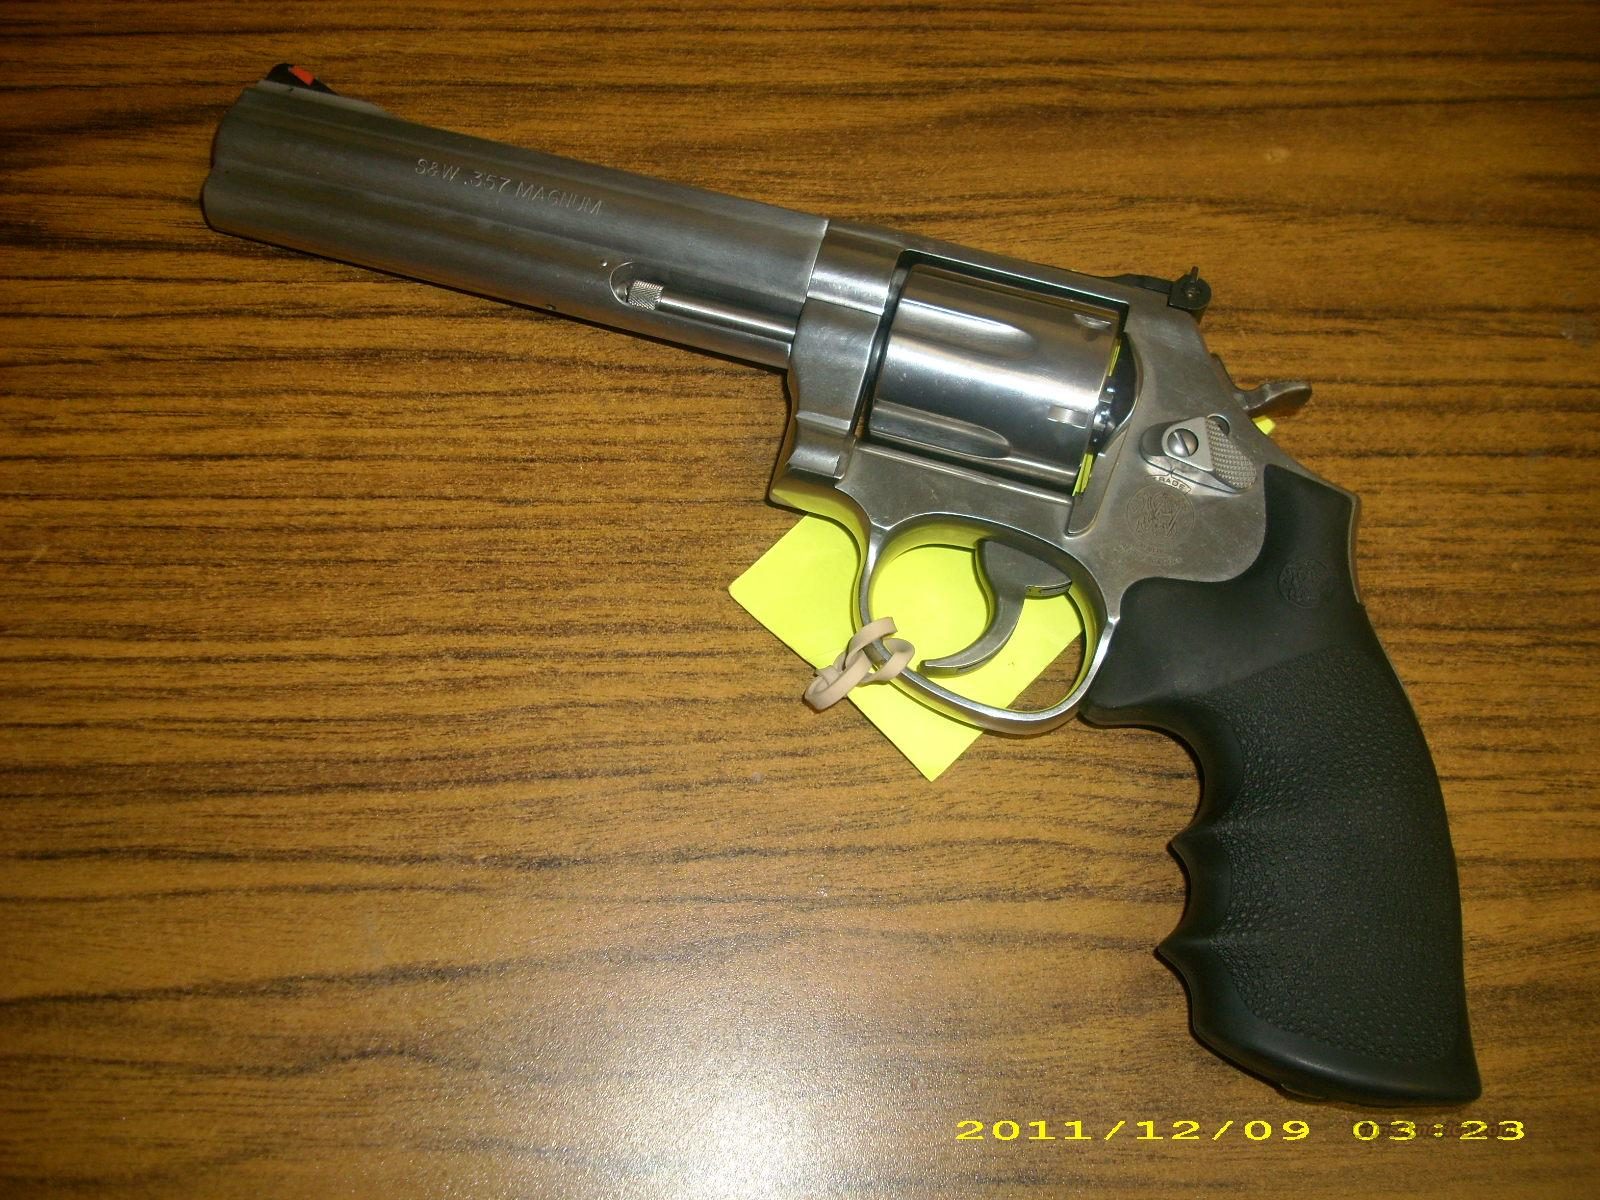 Smith & Wesson 686 Plus .357 Mag. #164198  Guns > Pistols > Smith & Wesson Revolvers > Full Frame Revolver